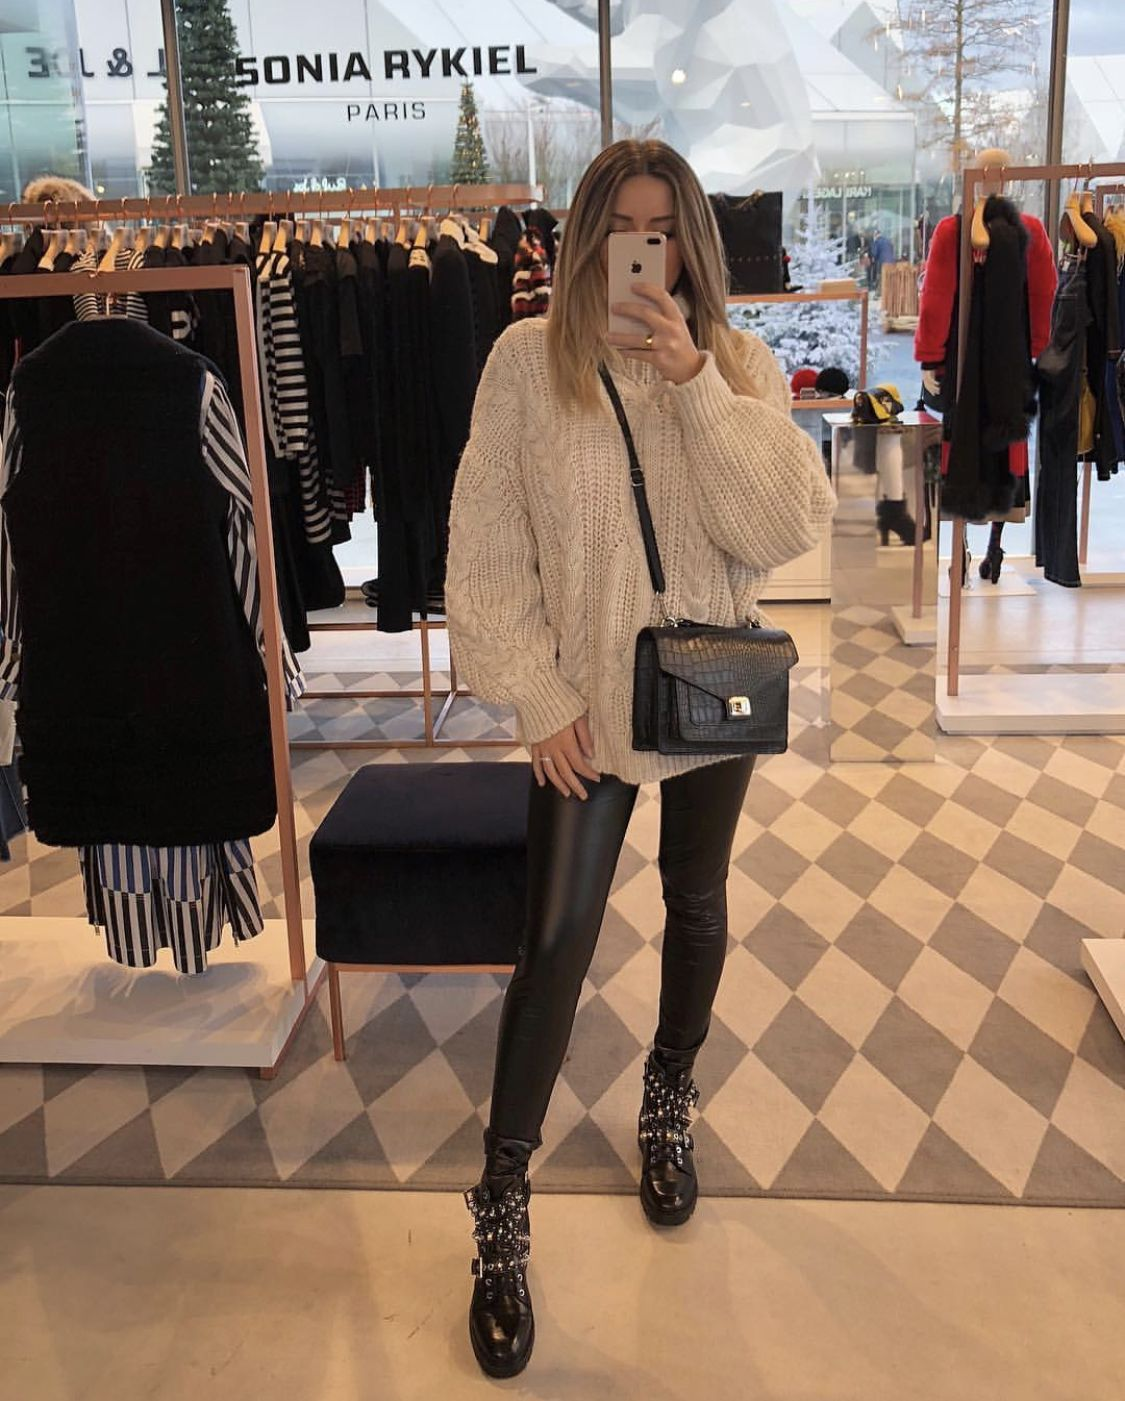 idées inspiration tenues automne-hiver #lifestyle #fashion #mode #trendy @bebadass @christmas @inspiration #outfitgoals